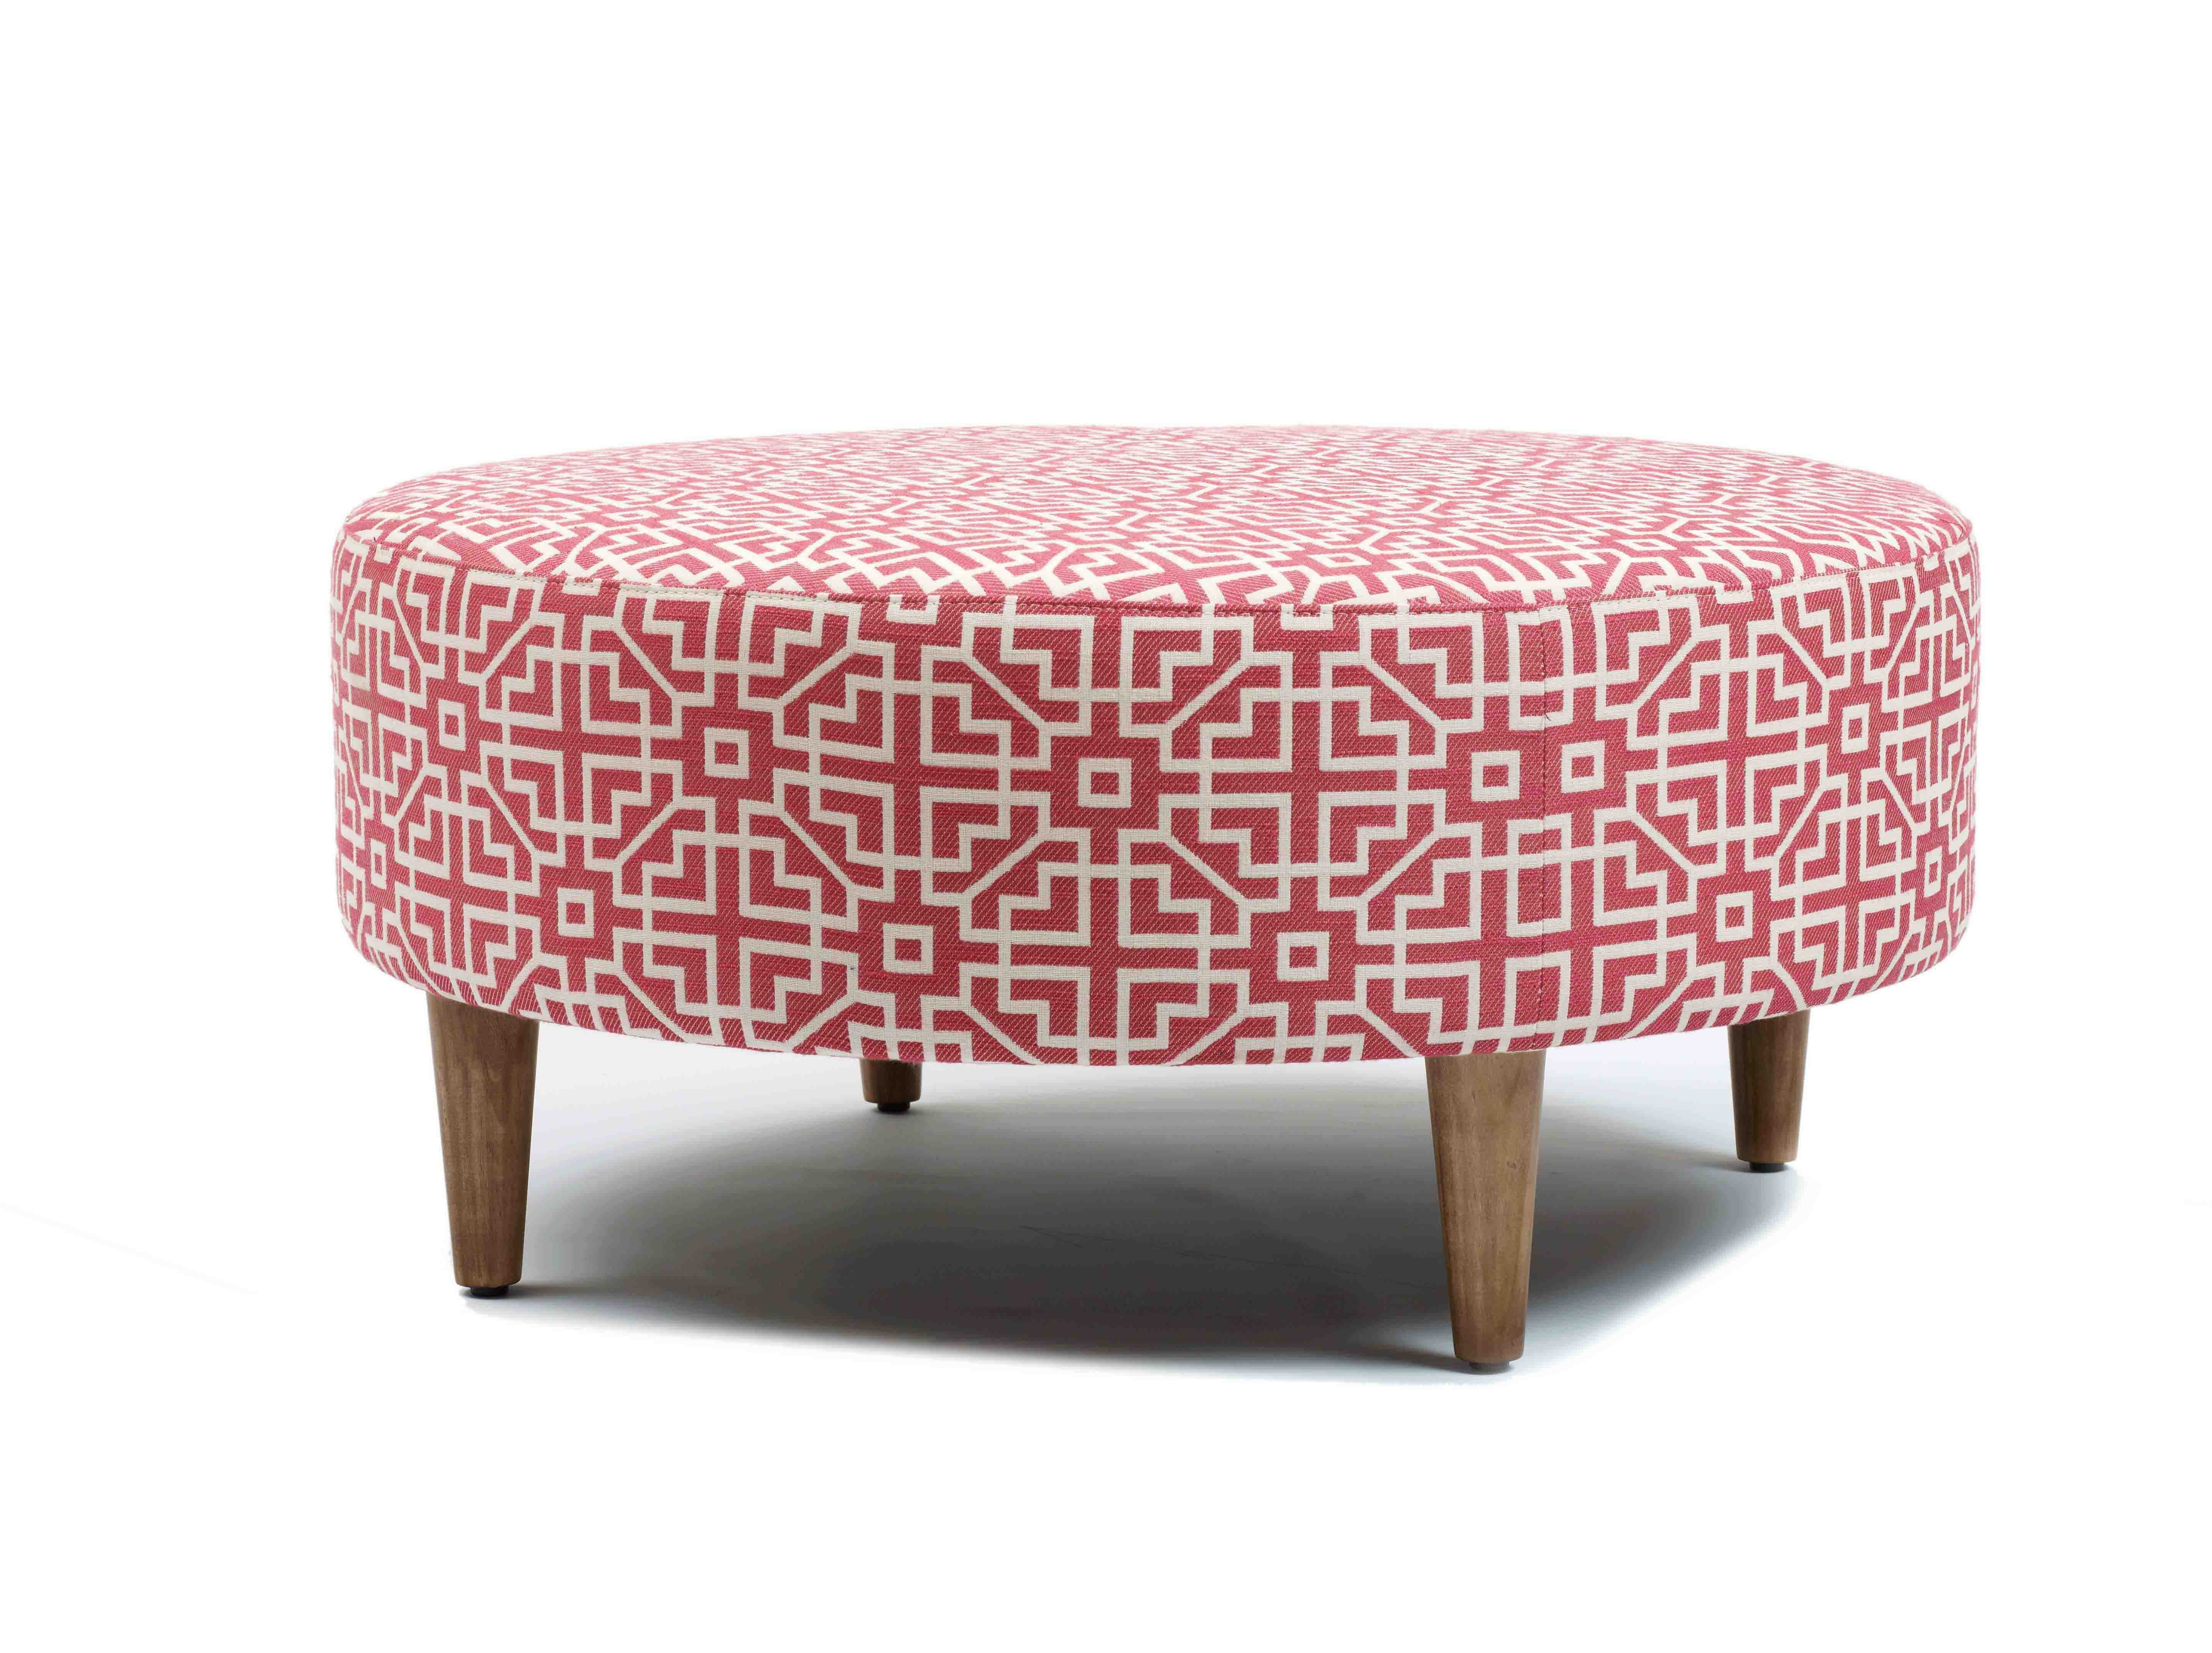 Sofas : Curved Sofa Swivel Snuggle Chair Big Round Swivel Chair In Popular Round Swivel Sofa Chairs (View 13 of 15)